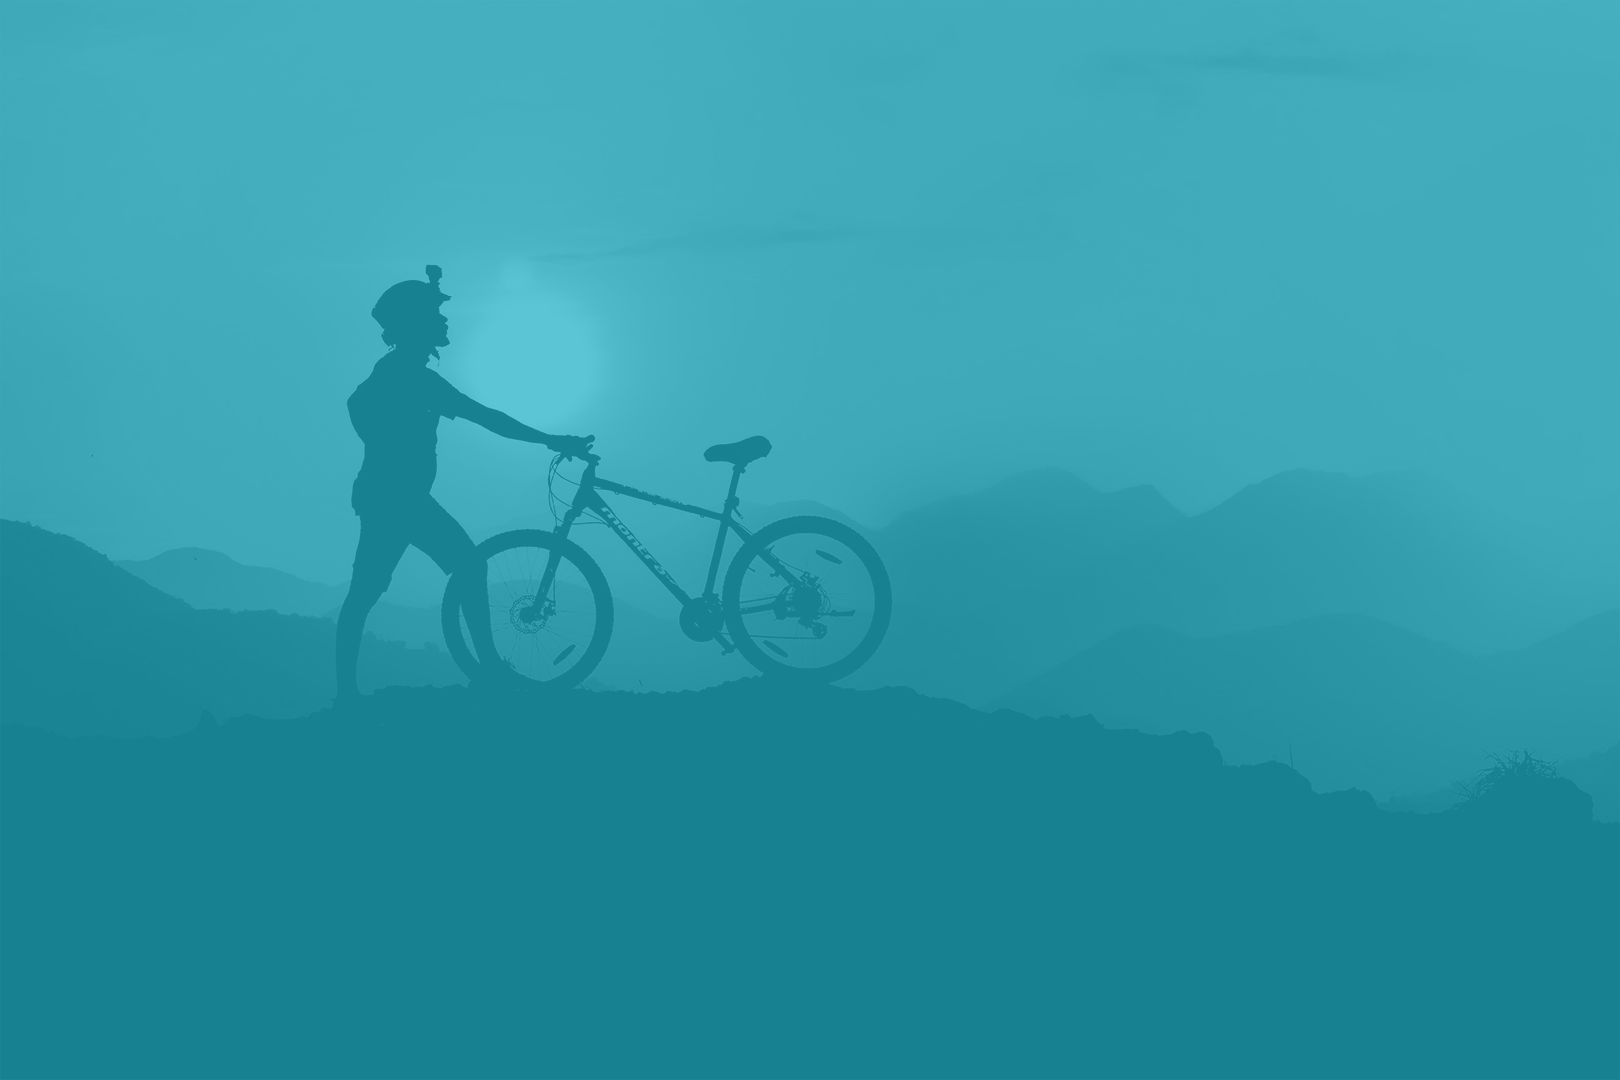 blue image of person with bicycle